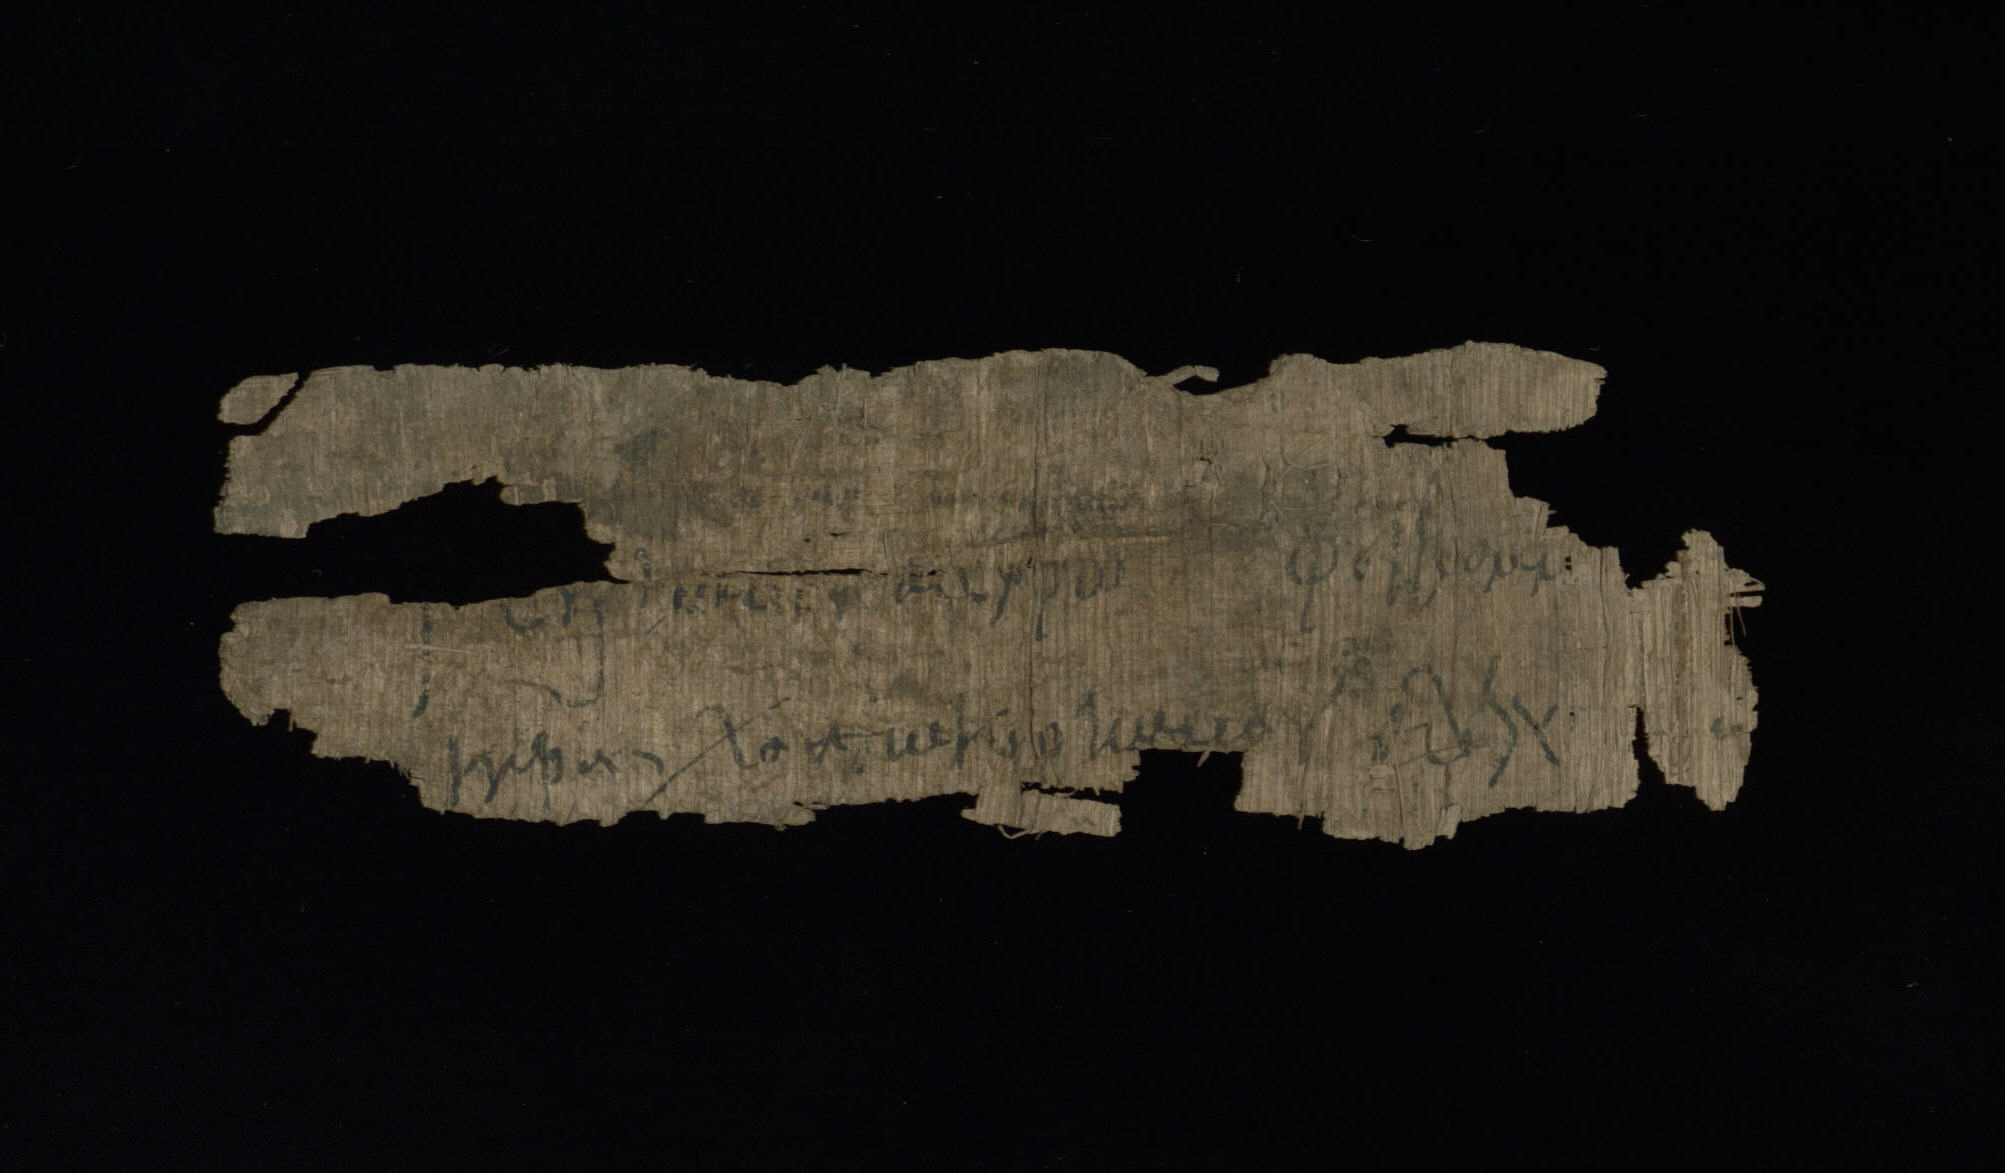 Documentary Manuscript Fragment written in Greek on Papyrus, Enlarged View - Verso